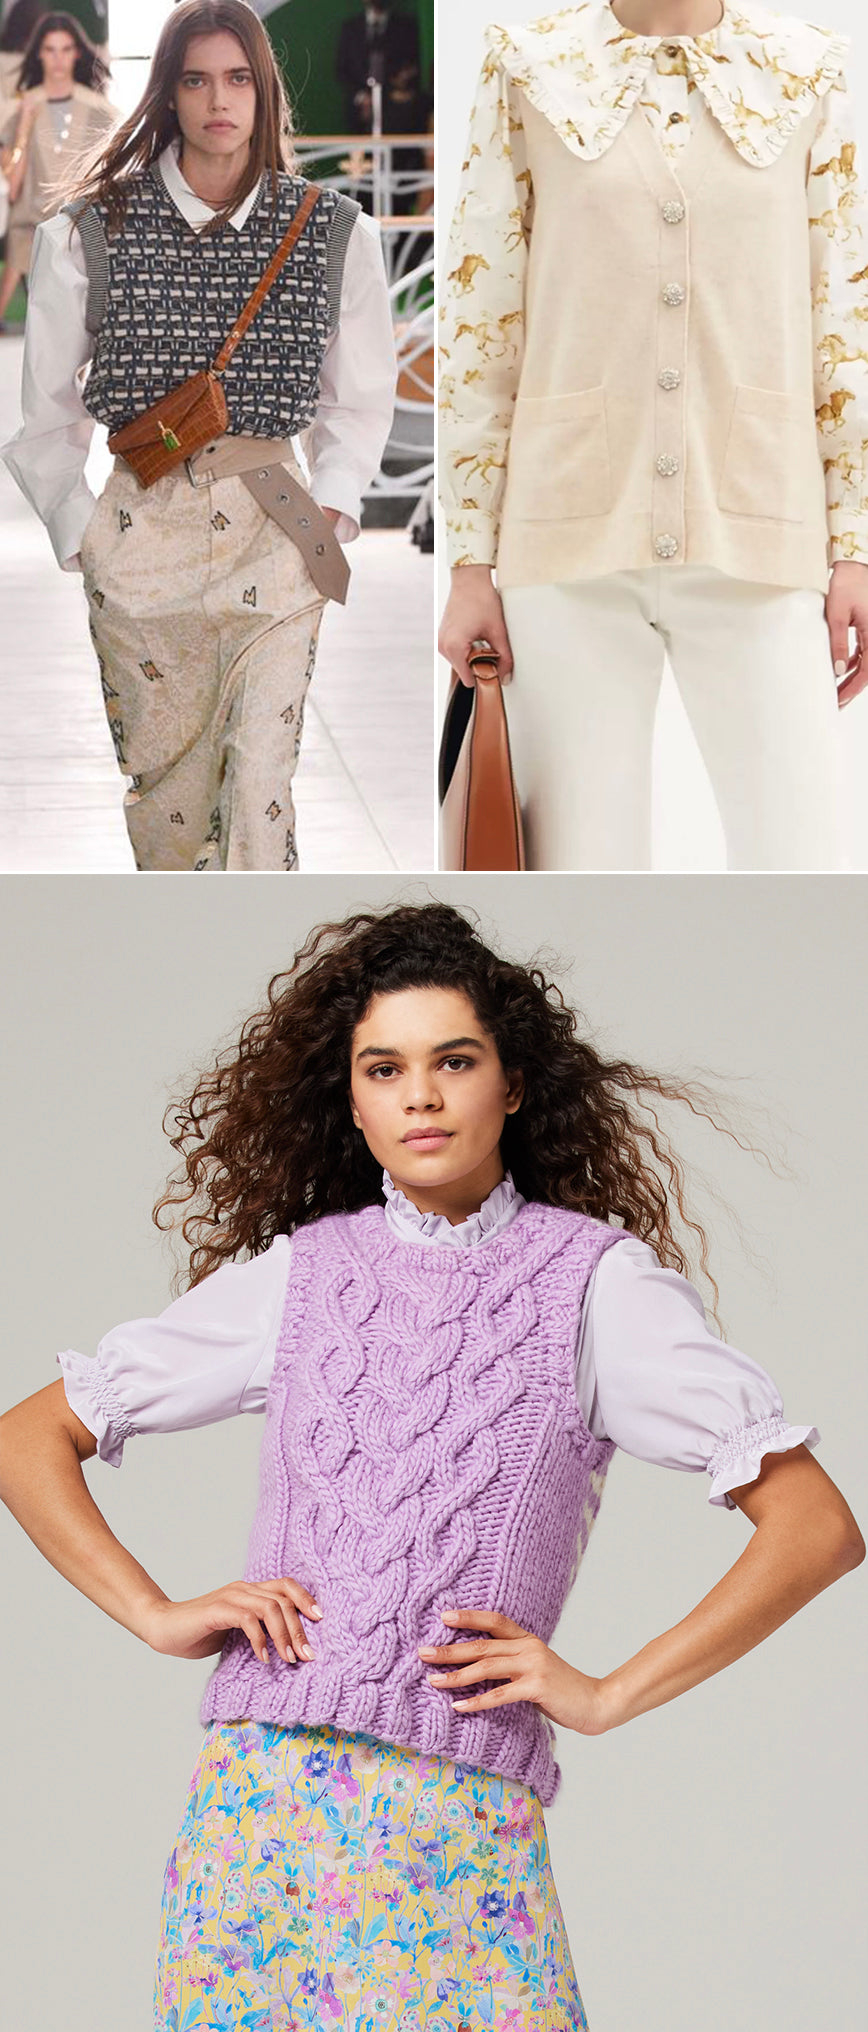 ridleylondon-knitted-lilac-vests-tank-sweater-spring2021